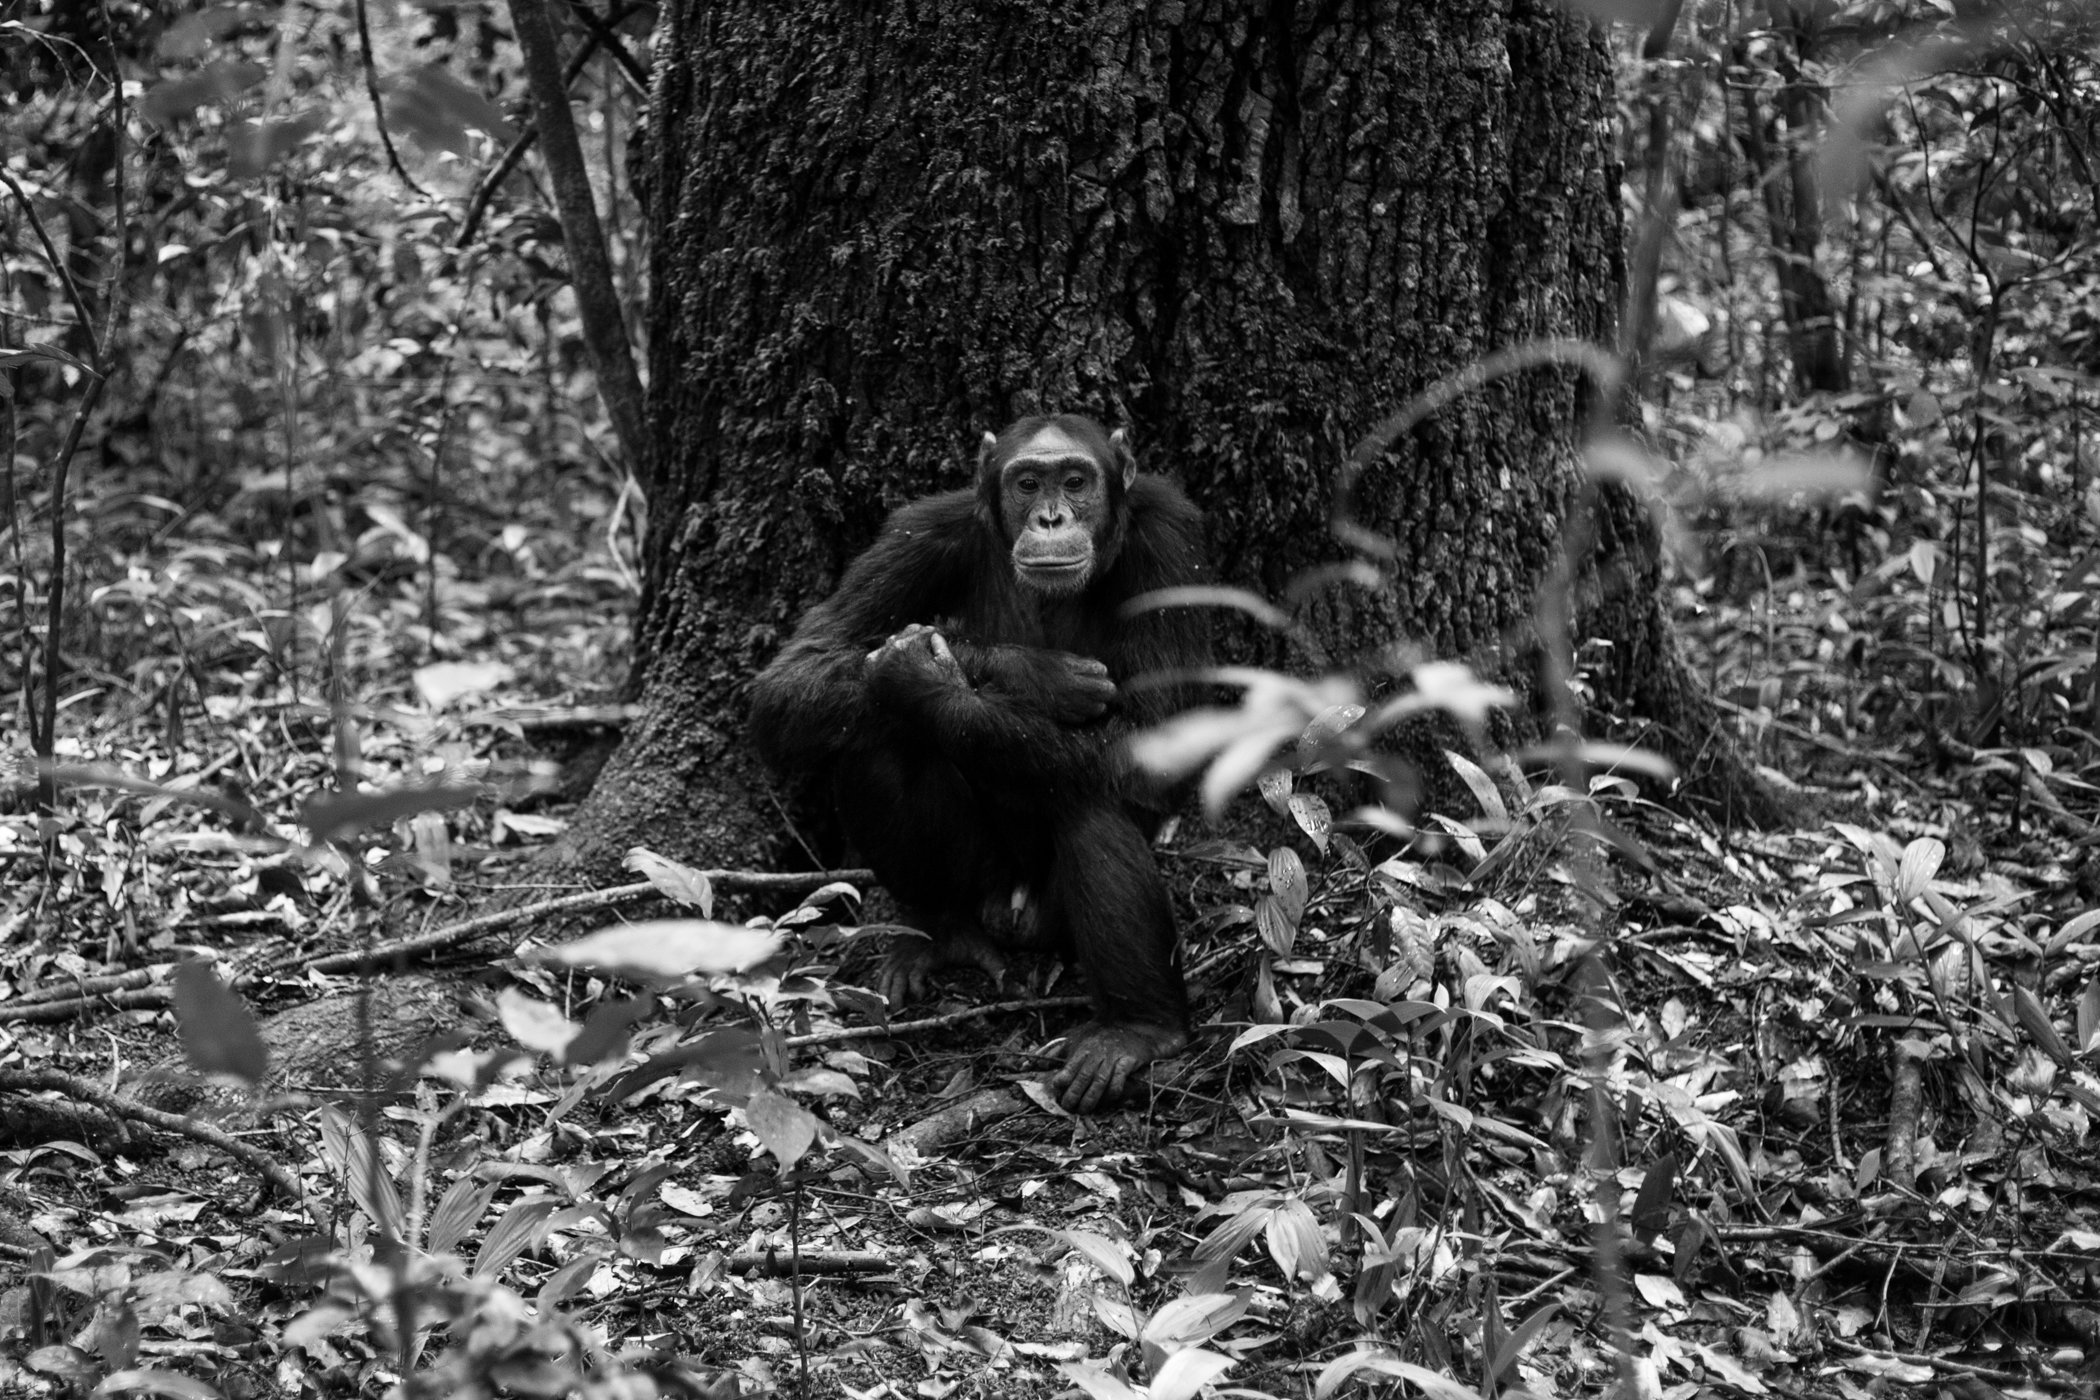 Chimp_Forest_Uganda-IMG_1326-untitled.jpg